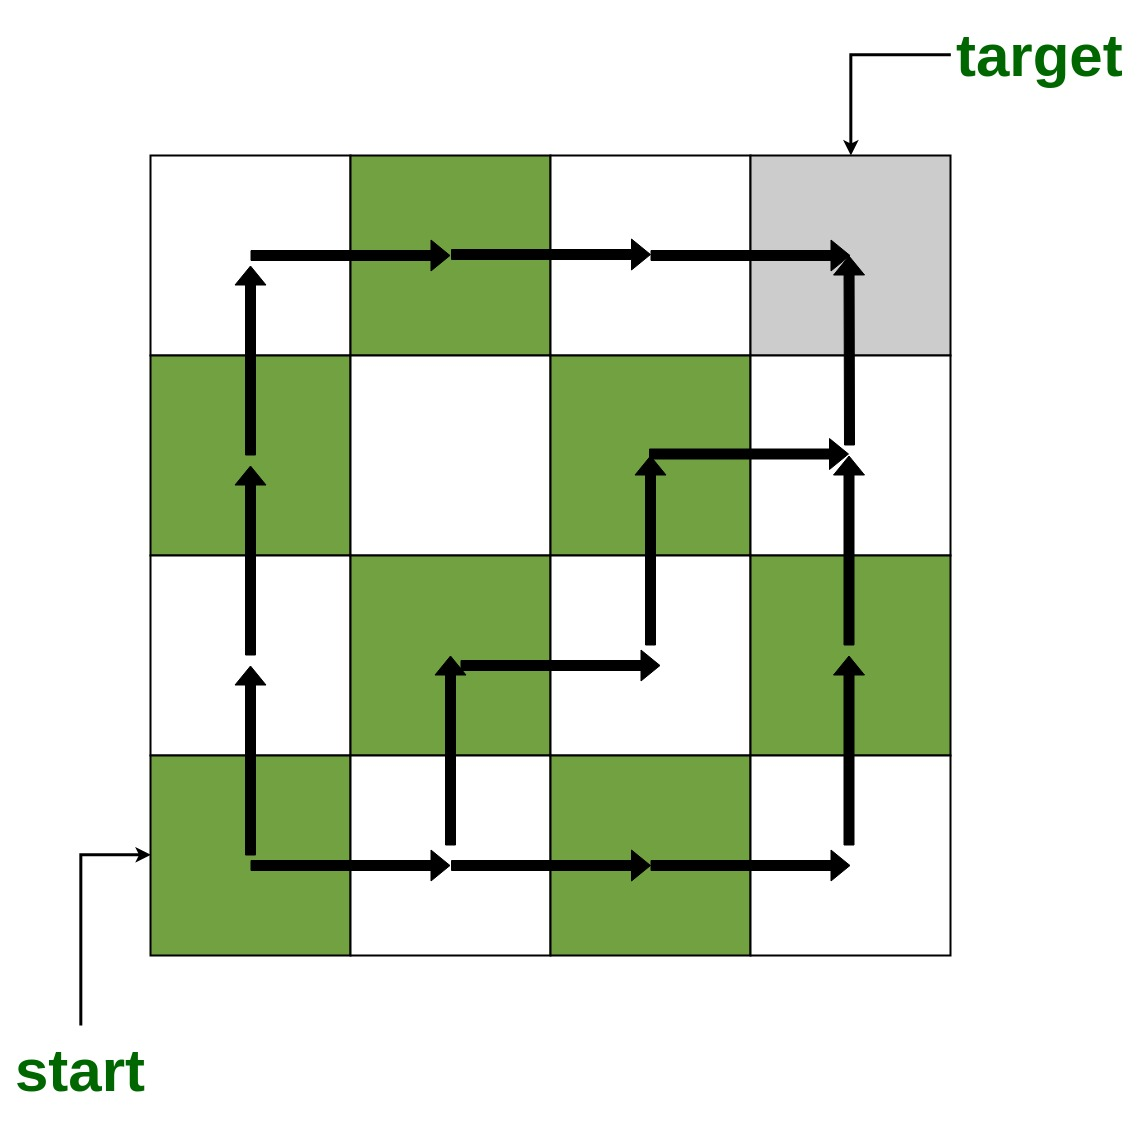 Number of shortest paths to reach every cell from bottom